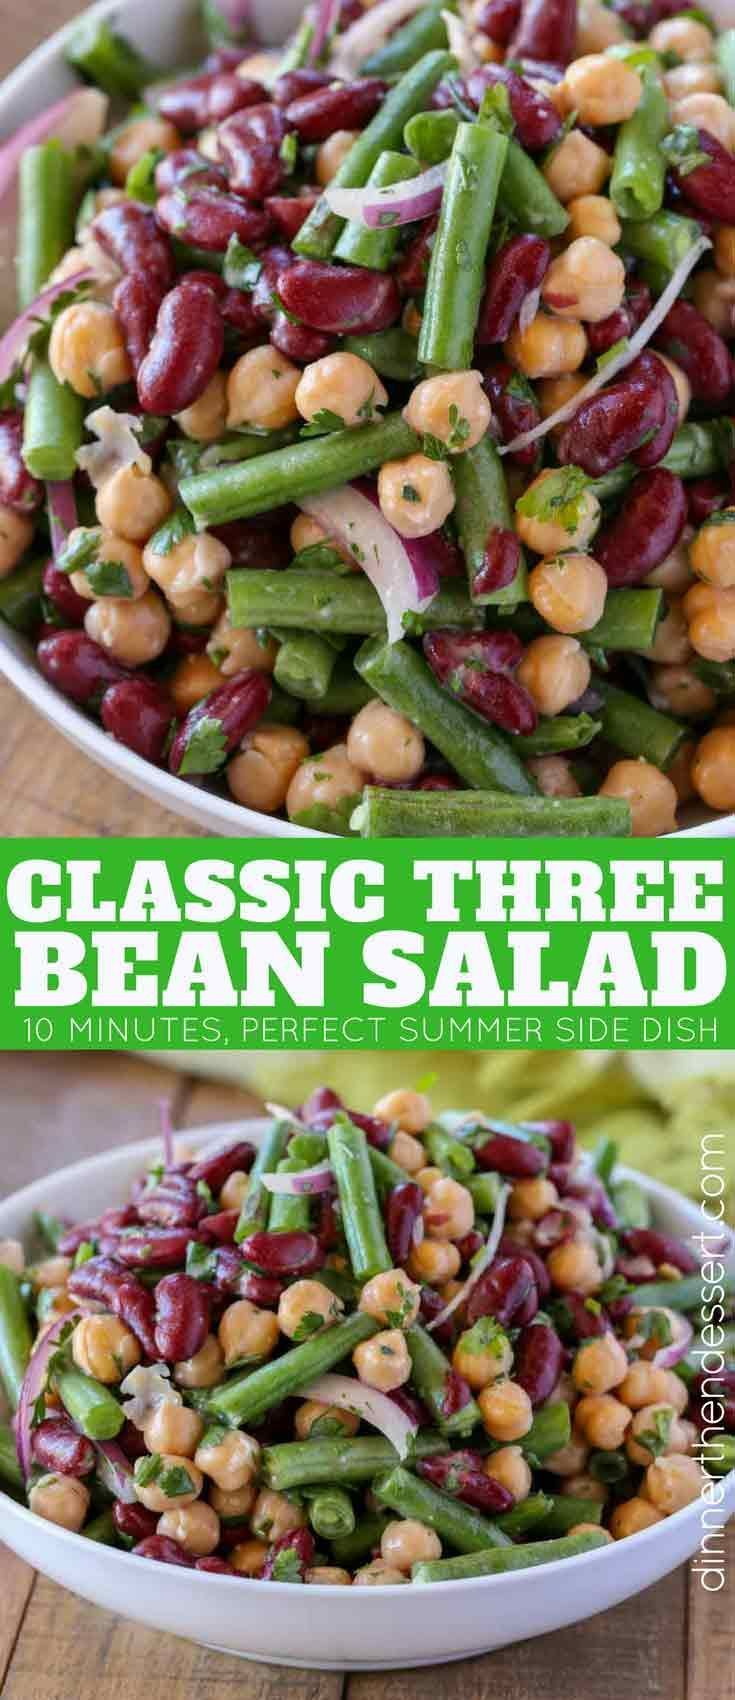 The Classic Three Bean Salad With Green Beans Garbanzo Beans And Kidney Beans Tossed With A Swe Bean Salad Recipes Green Bean Salad Recipes Summer Side Dishes